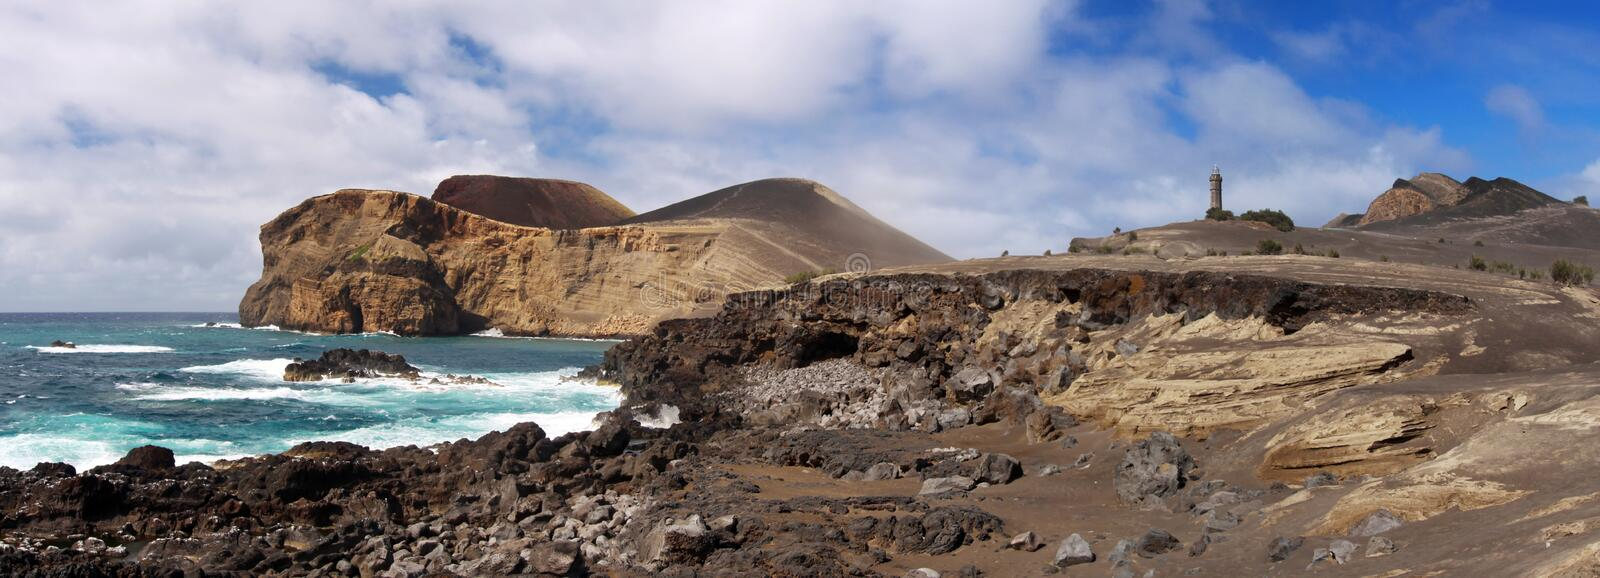 Coastline near Capelinhos, Faial Azores royalty free stock images